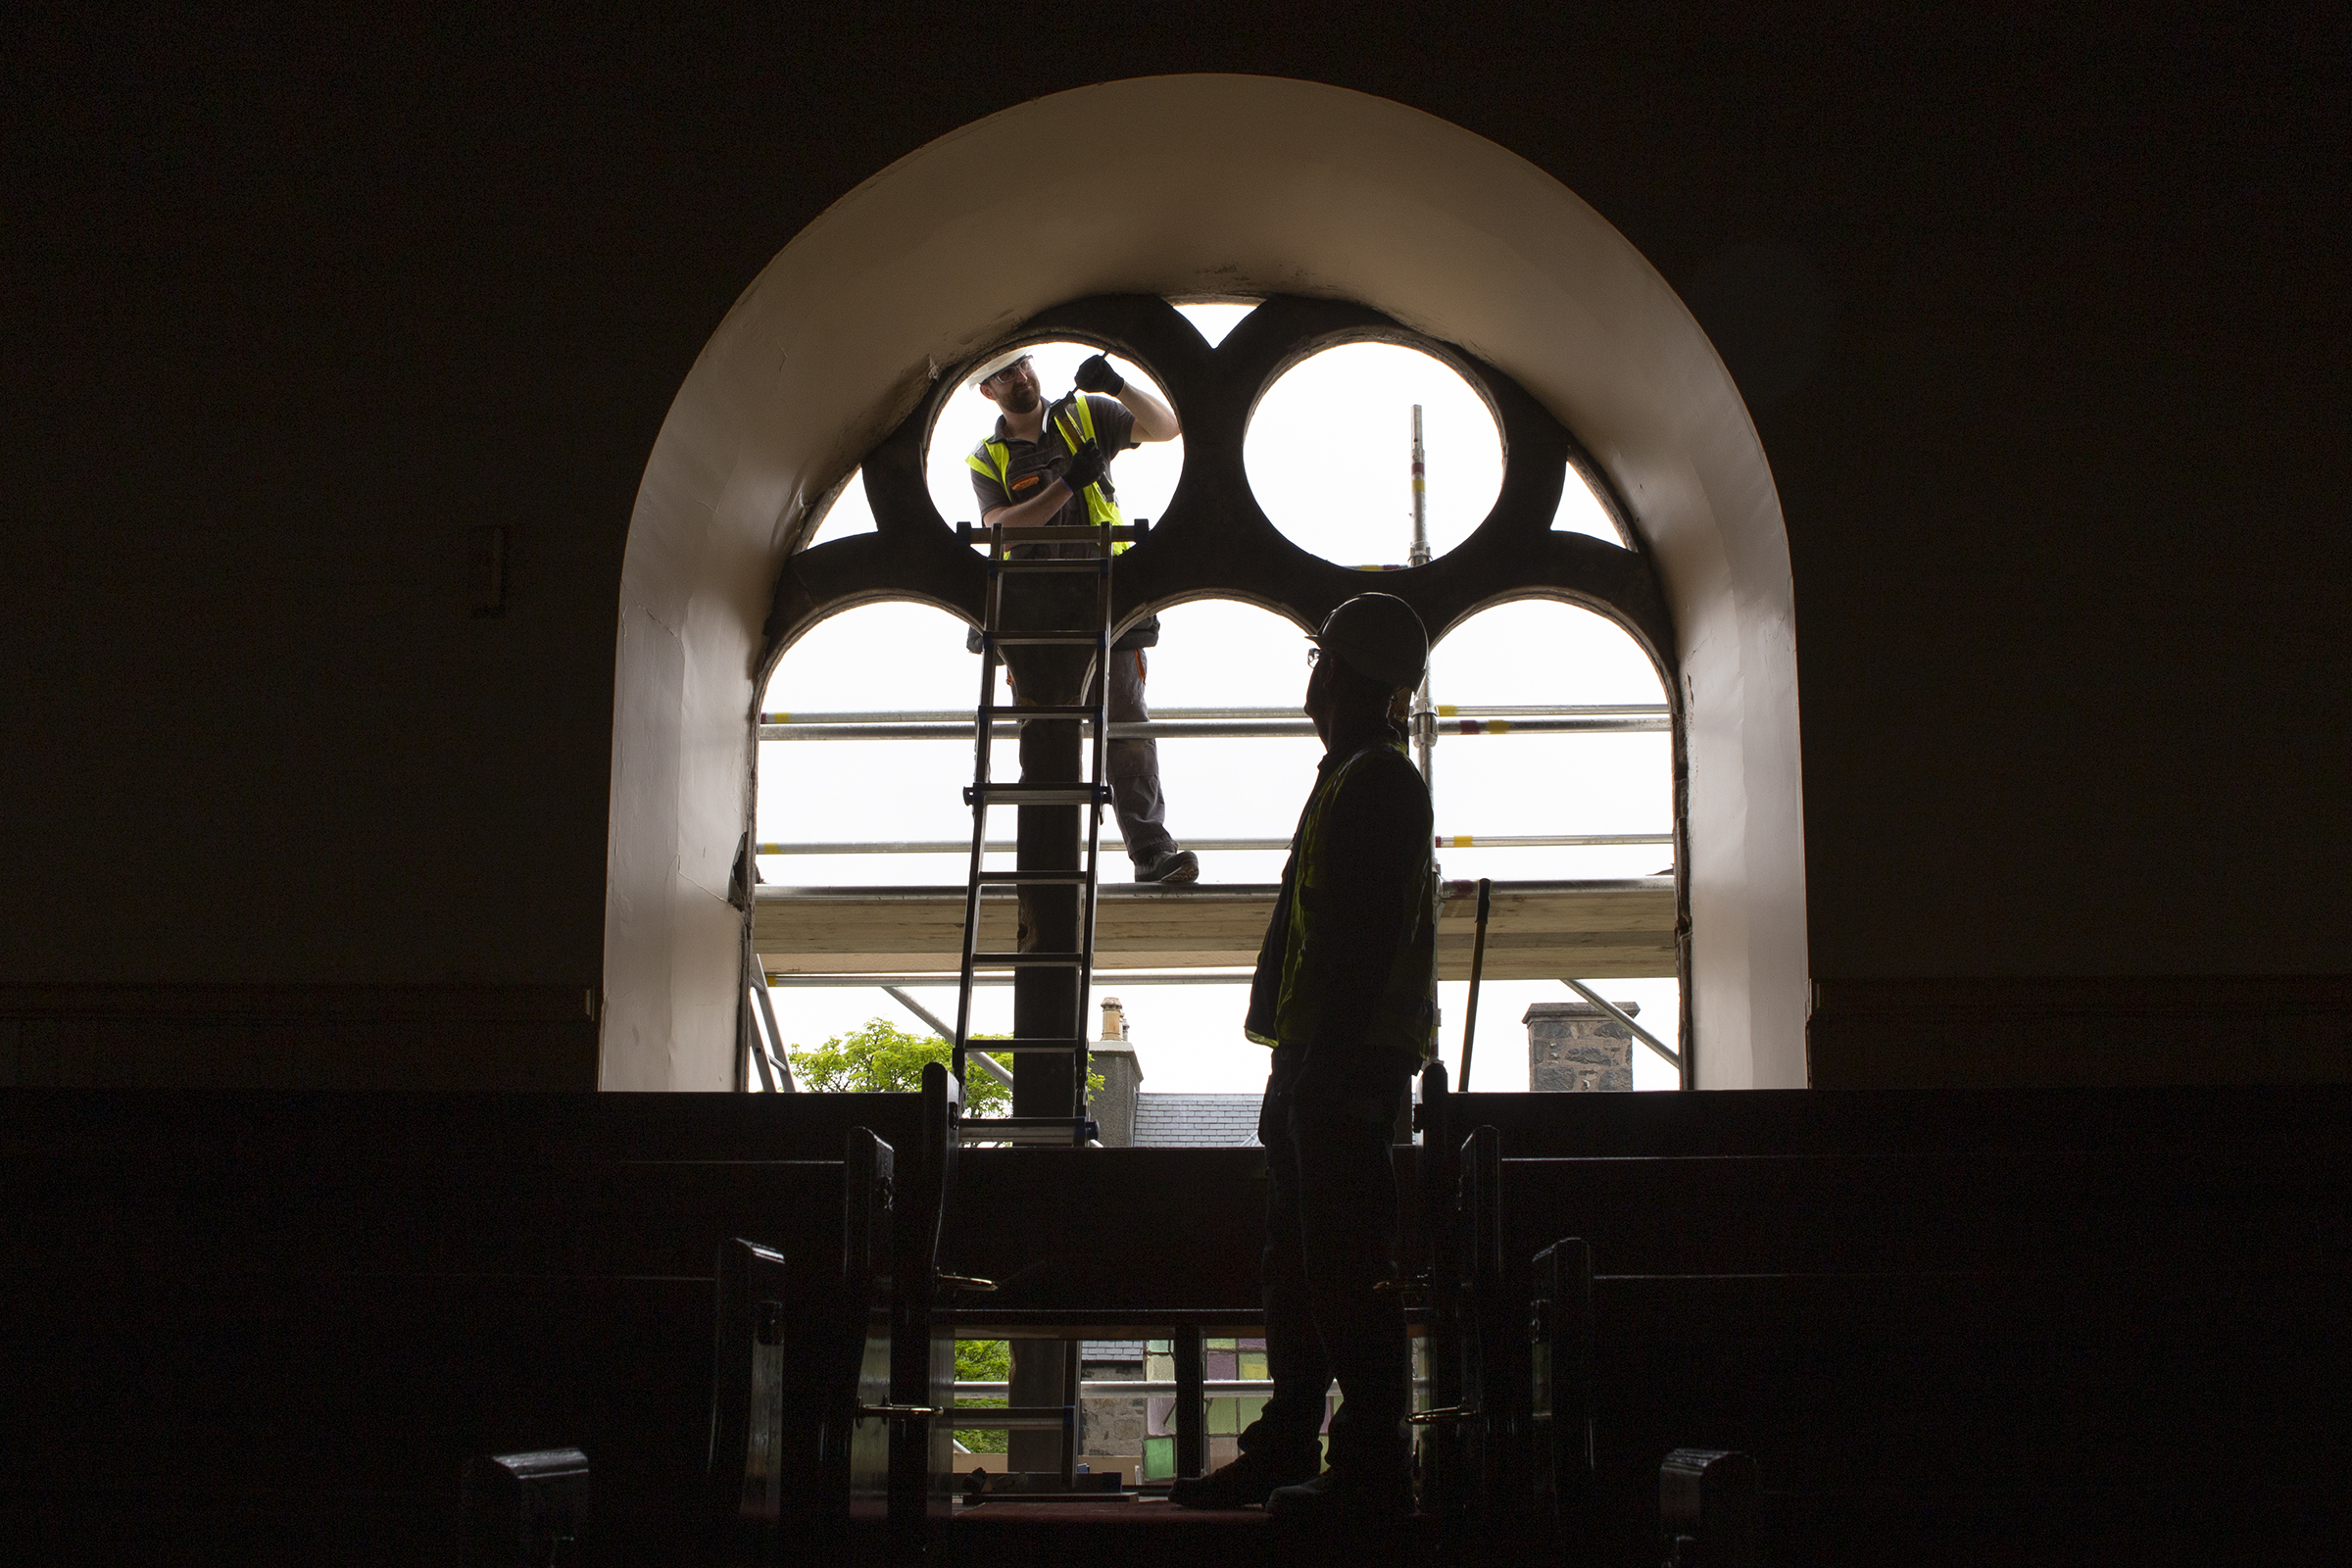 Work to restore the stained glass windows at St Columba's Church in Stornoway is now underway thanks to the £50,000 donation from the Point and Sandwick Trust. Picture by Sandie Maciver/SandiePhotos